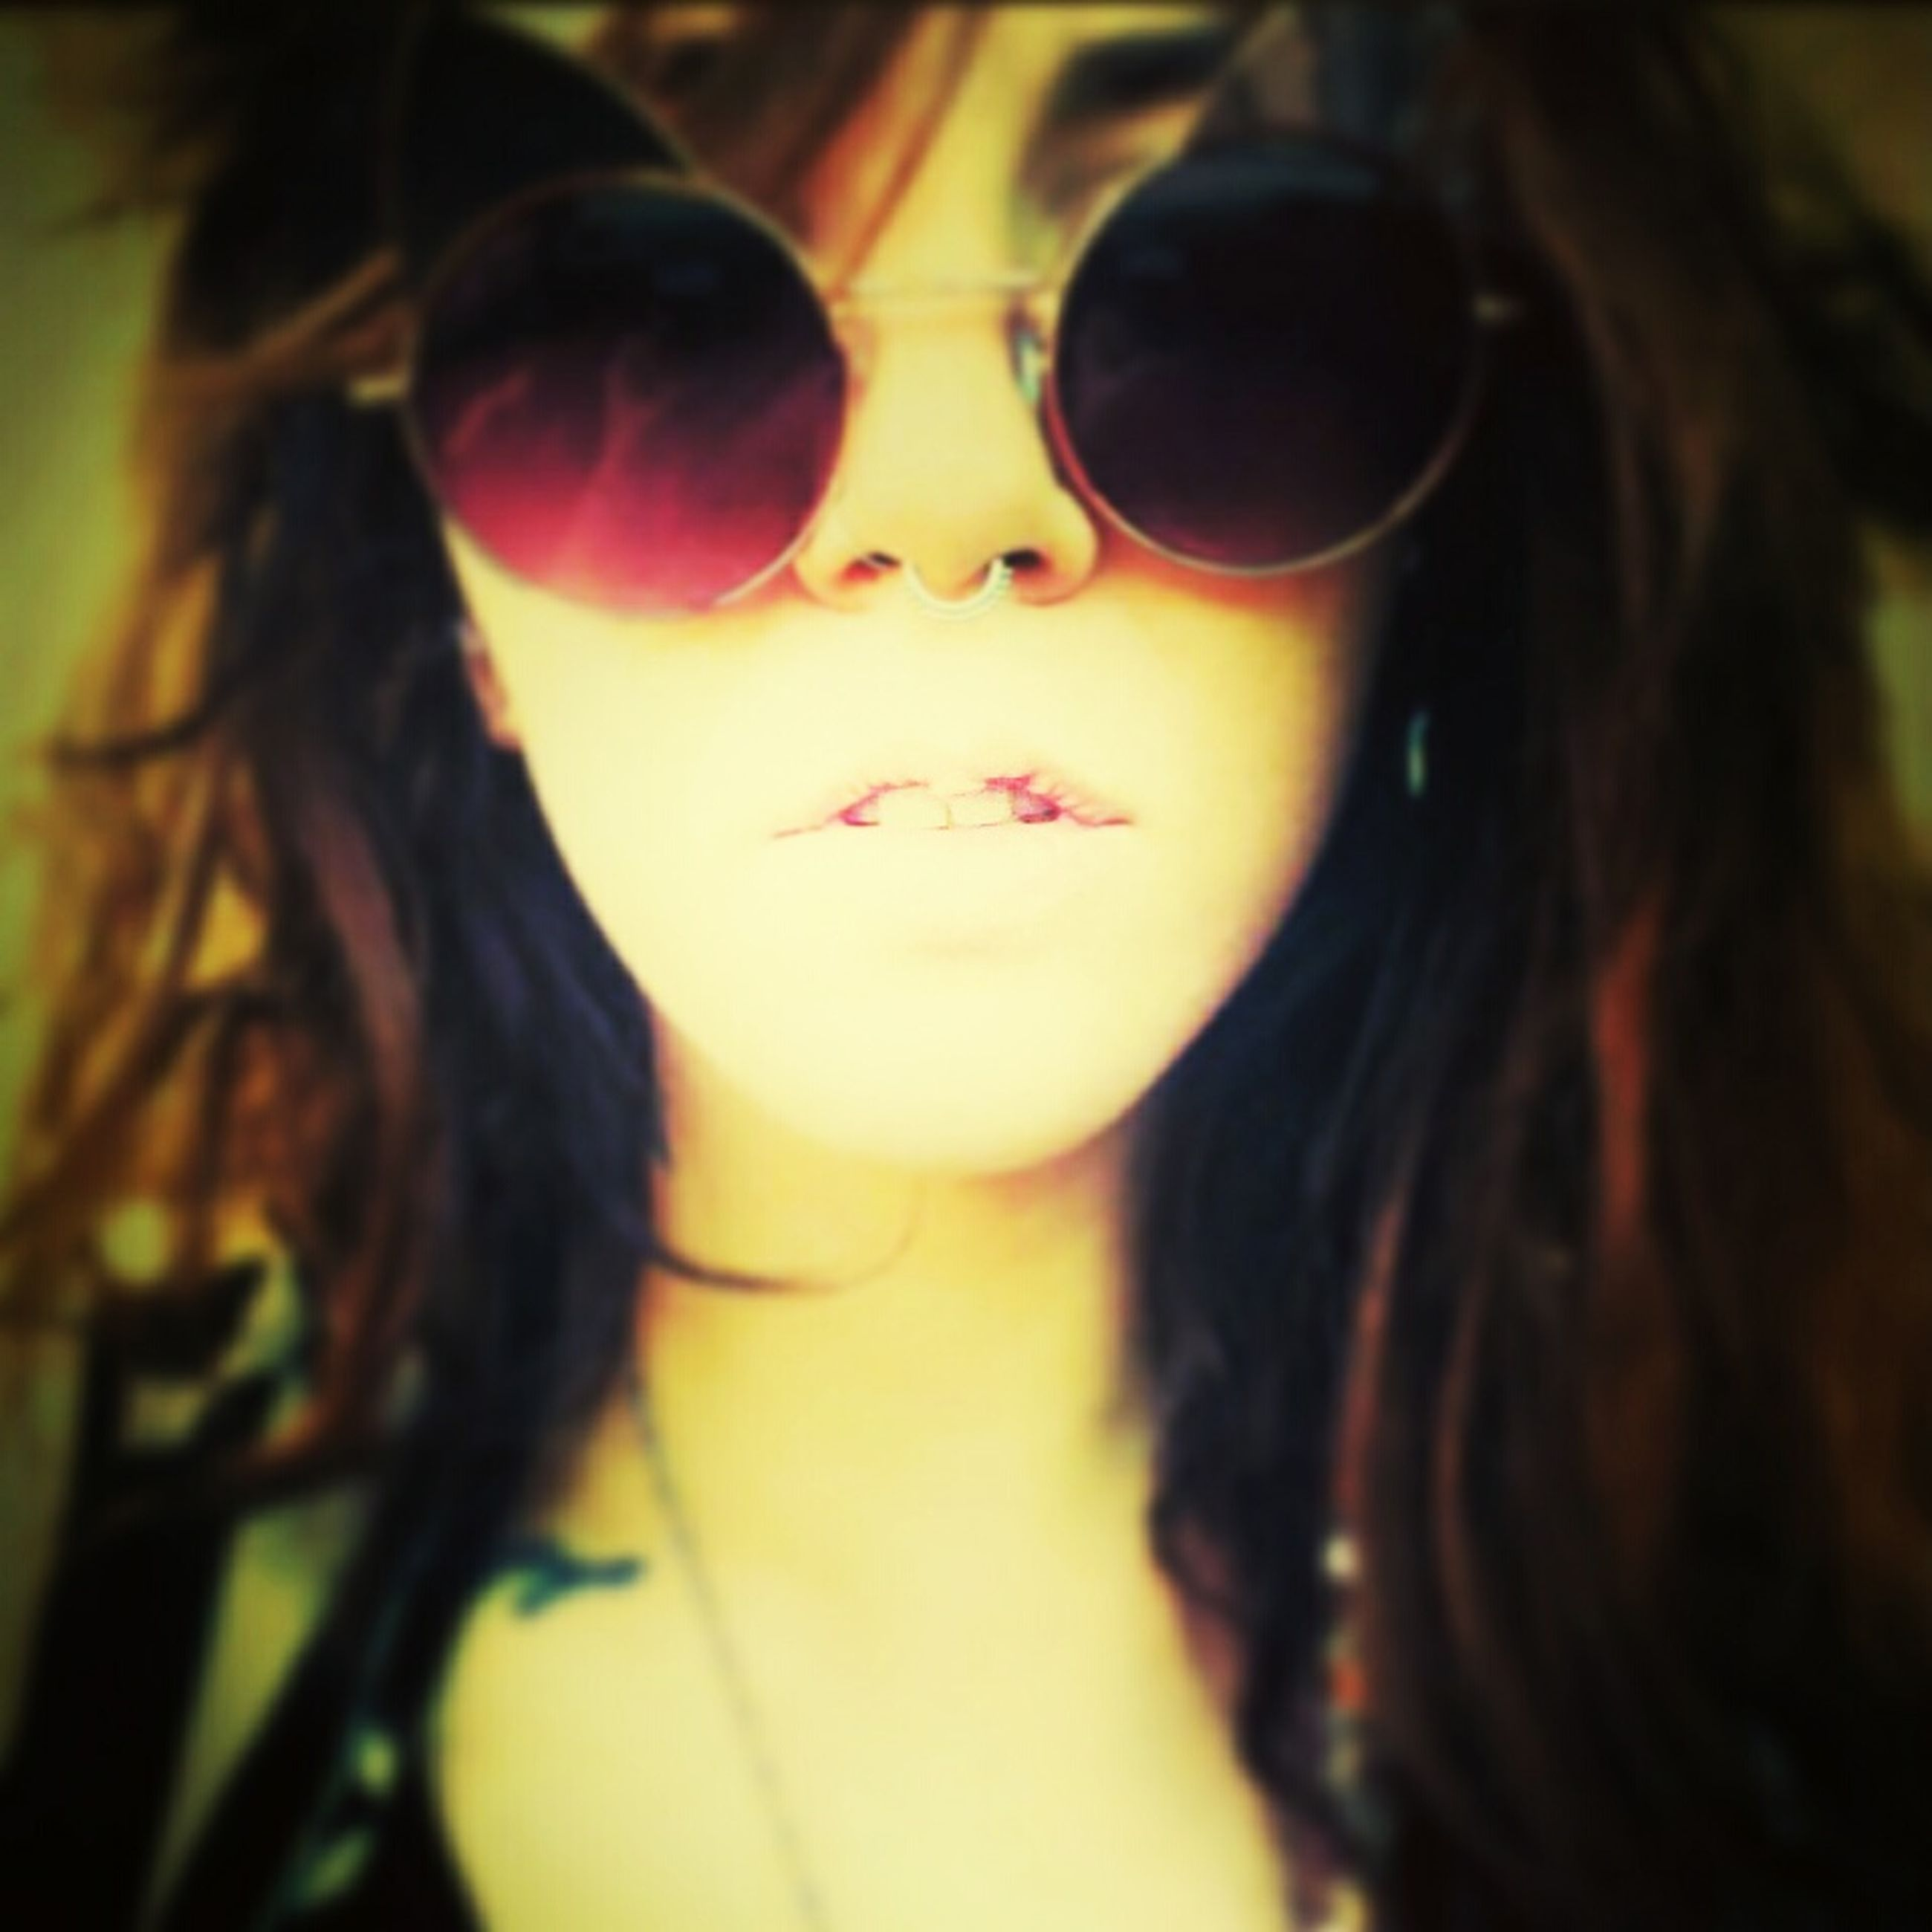 headshot, indoors, lifestyles, person, young adult, young women, close-up, looking at camera, leisure activity, portrait, long hair, focus on foreground, head and shoulders, front view, transportation, sunglasses, selective focus